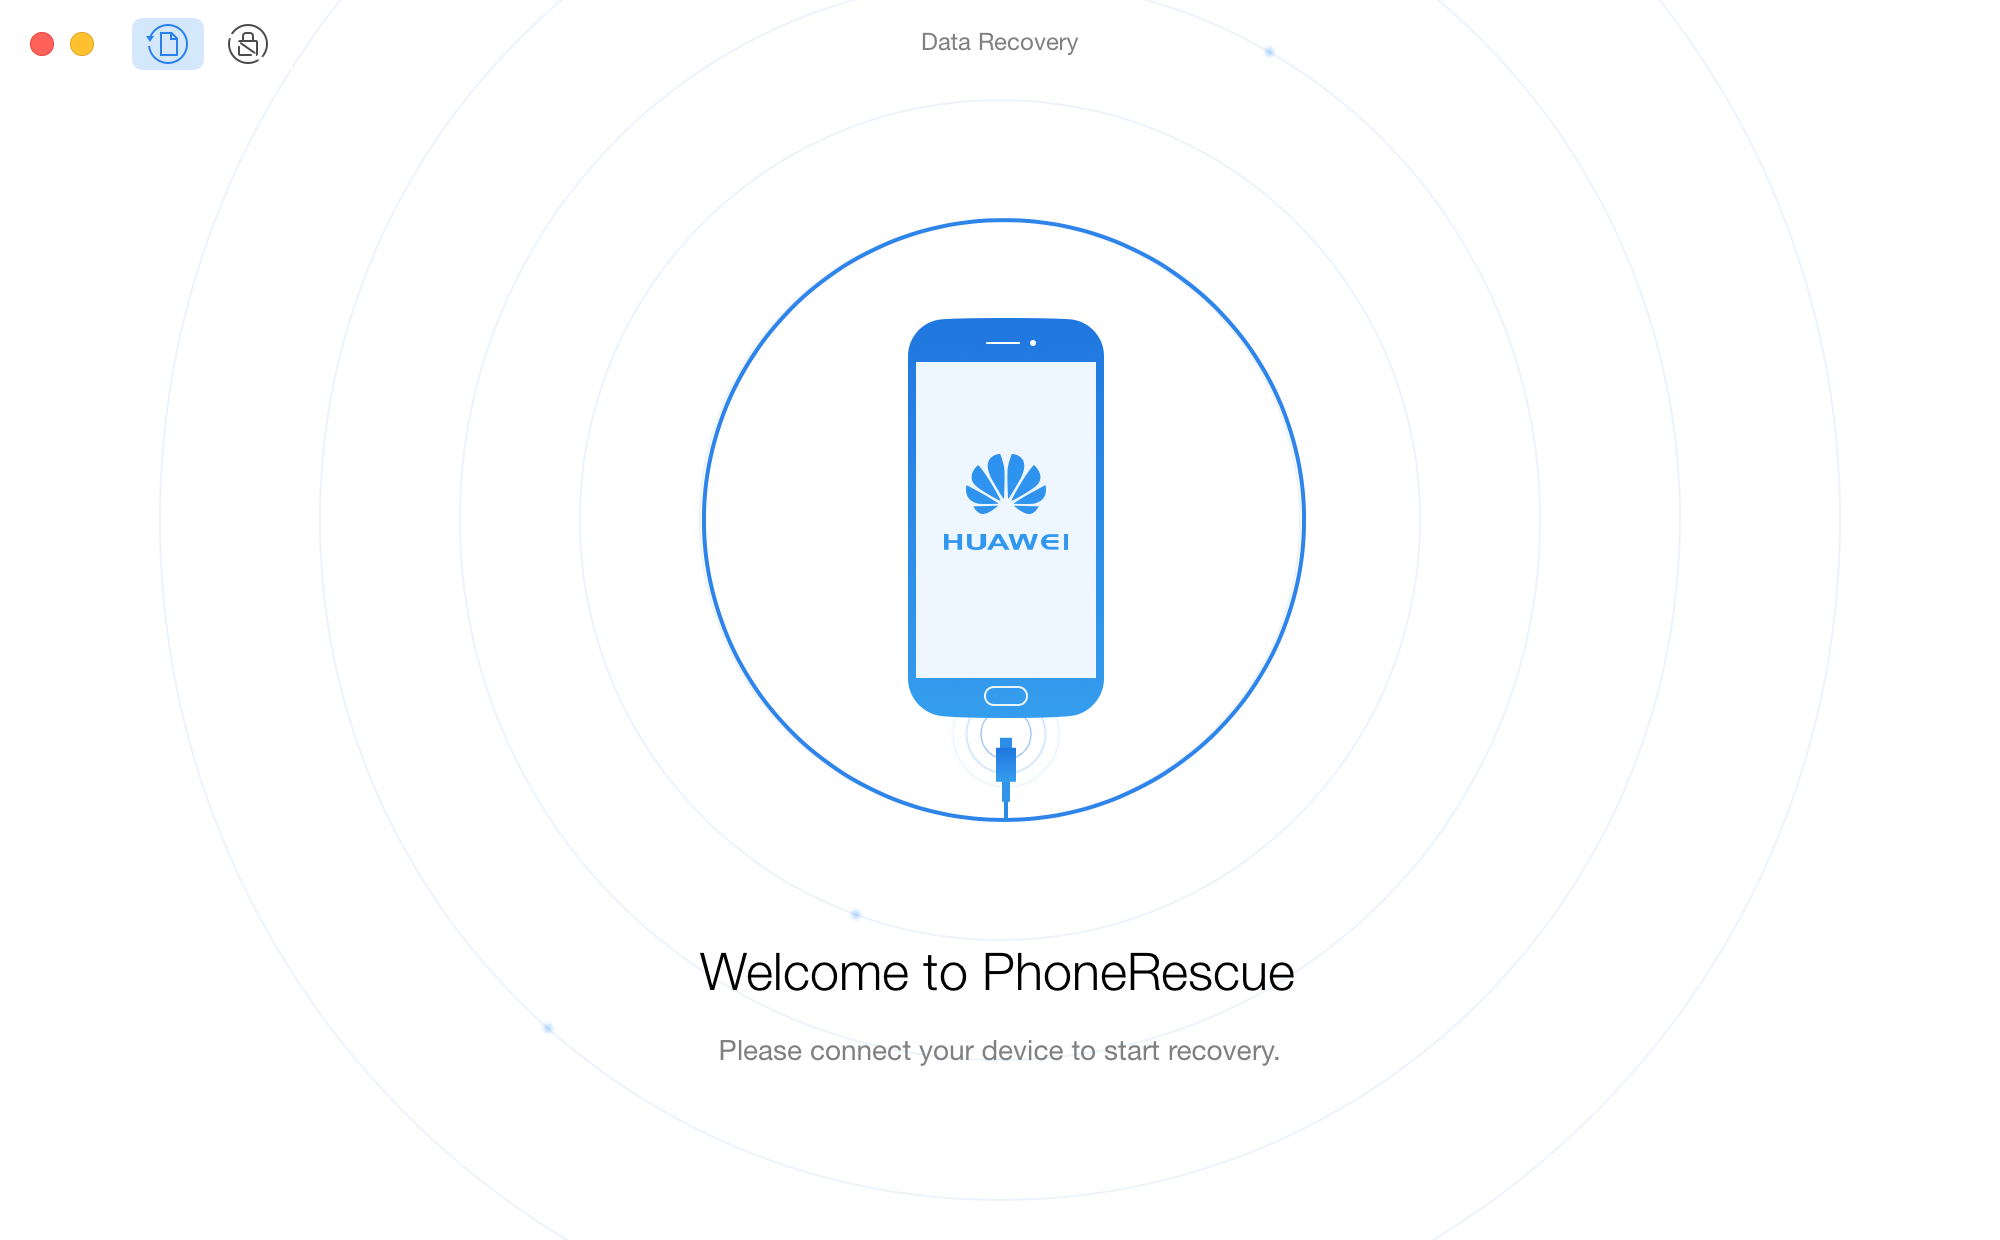 PhoneRescue for HUAWEI Online Guide - Recover from HUAWEI Device